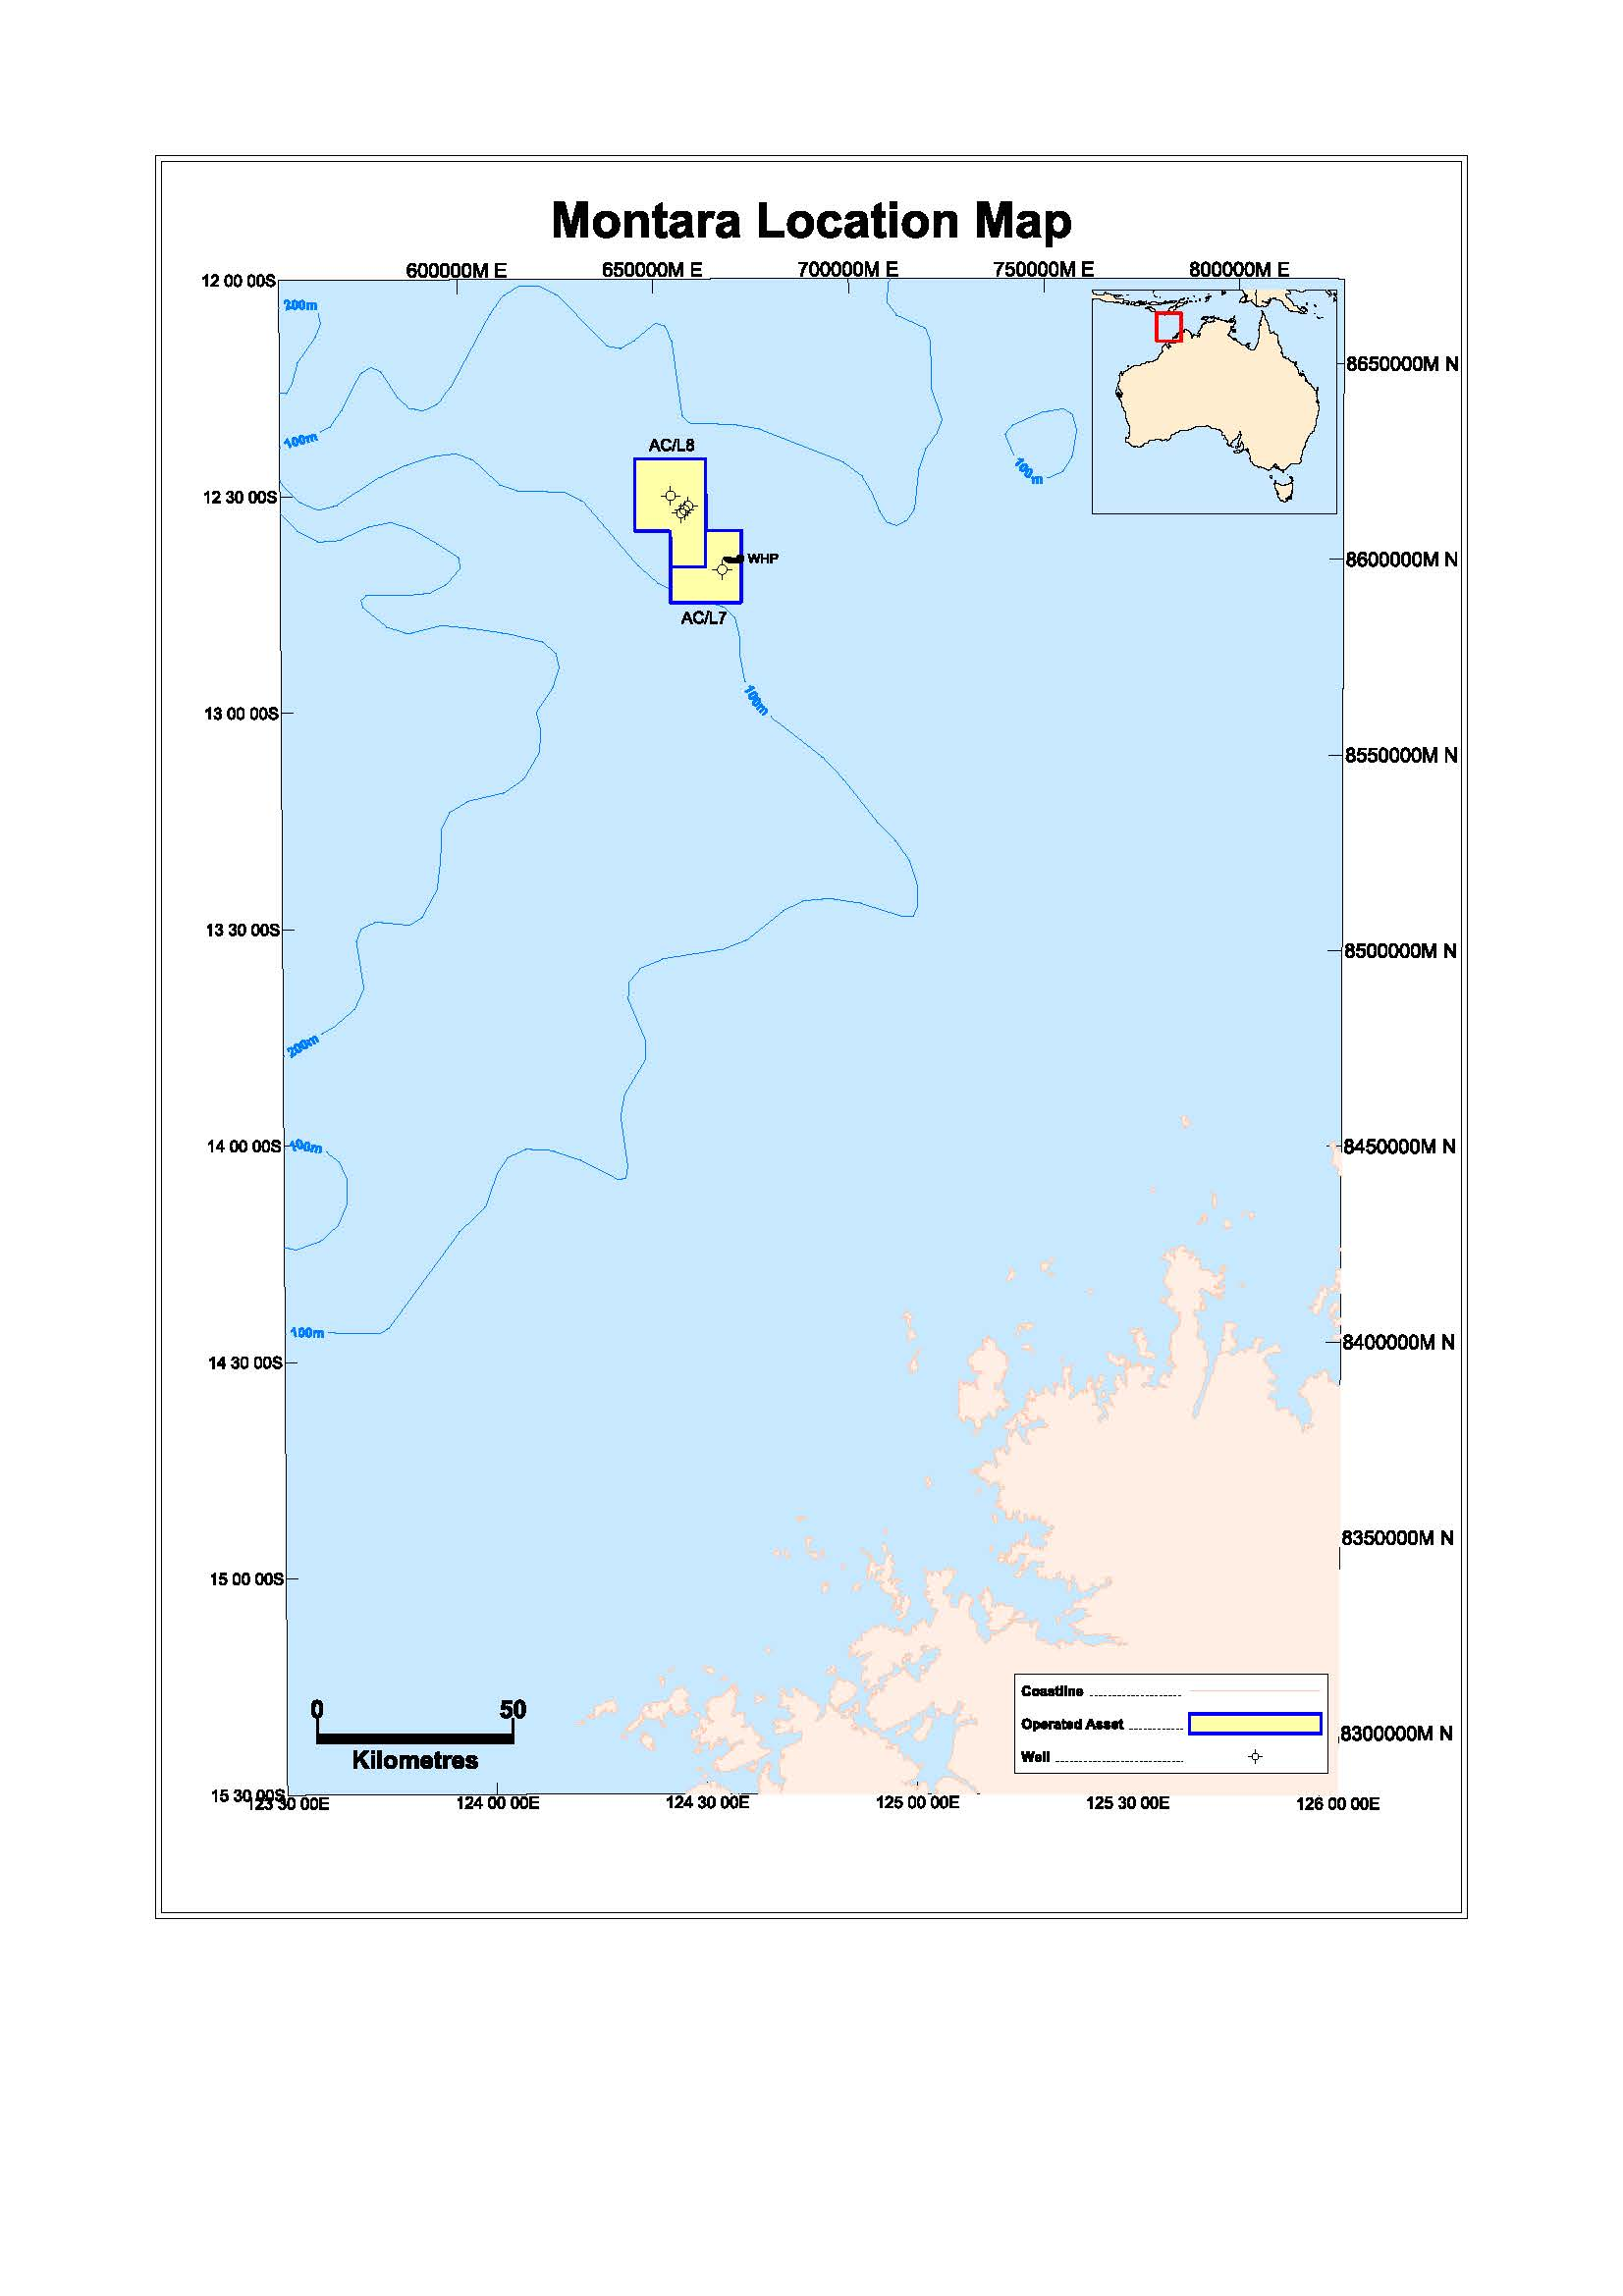 Location map - Activity: Montara Production Drilling (refer to description)